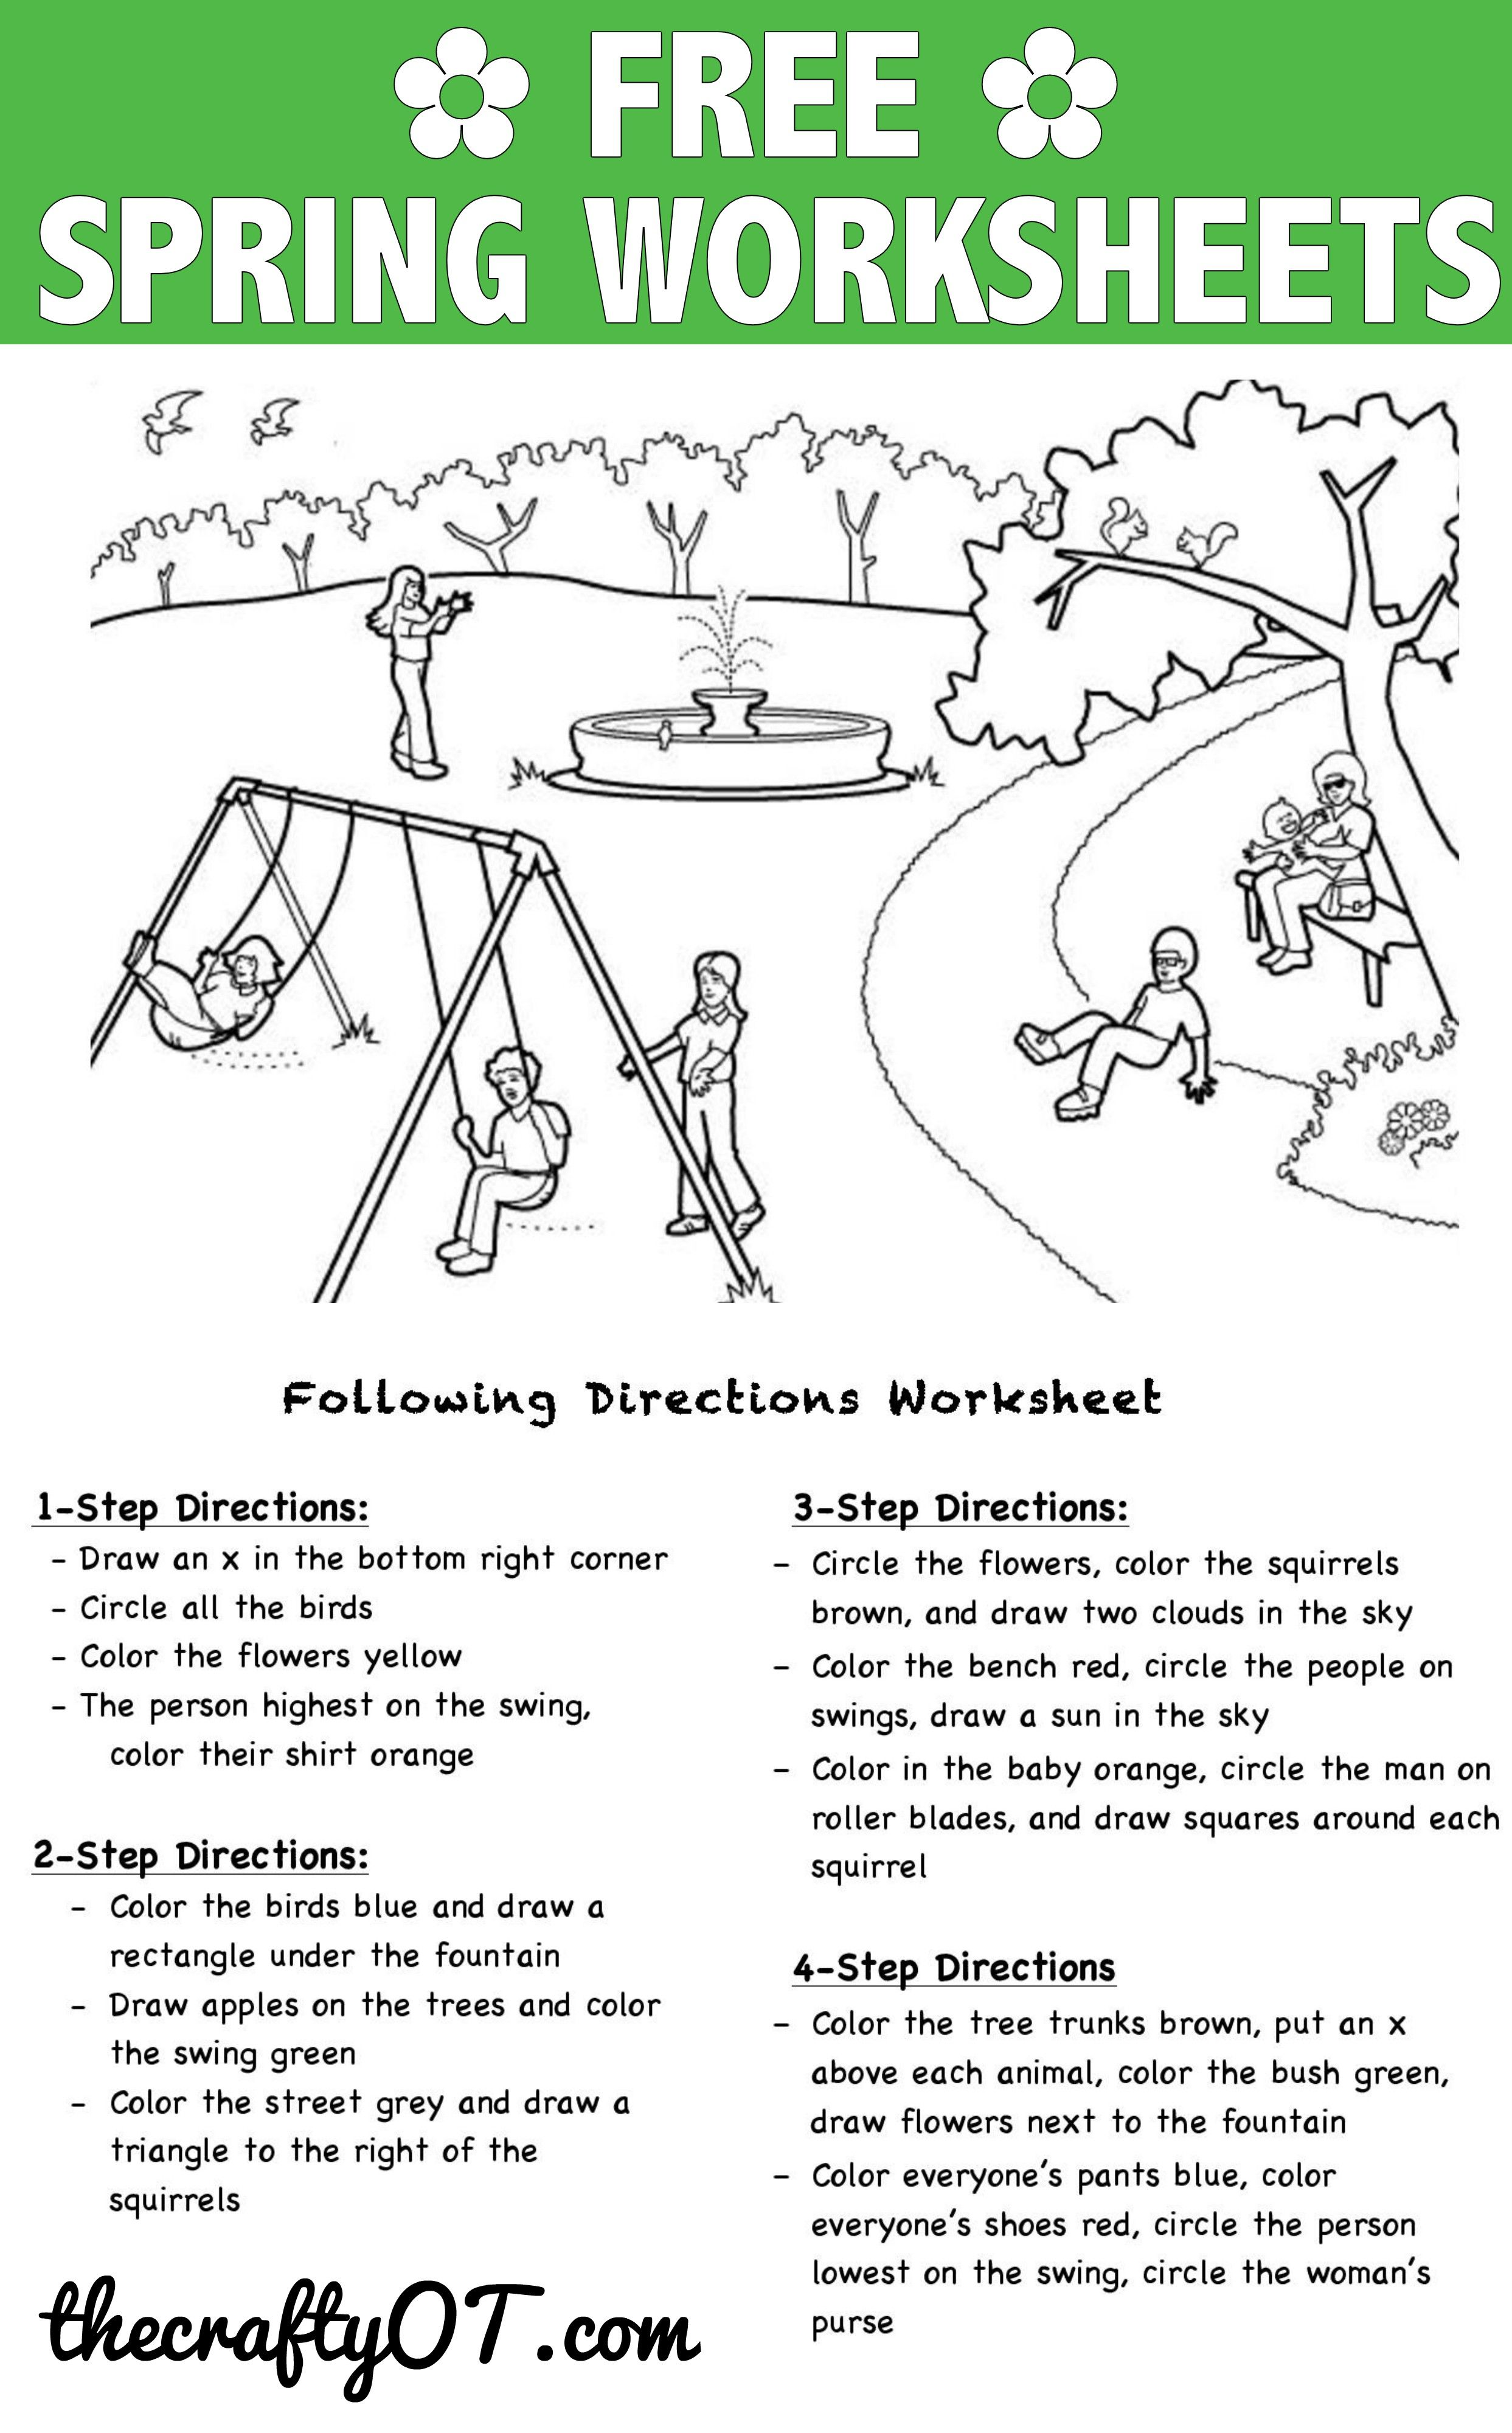 free spring worksheets teaching occupational therapy activities following directions. Black Bedroom Furniture Sets. Home Design Ideas